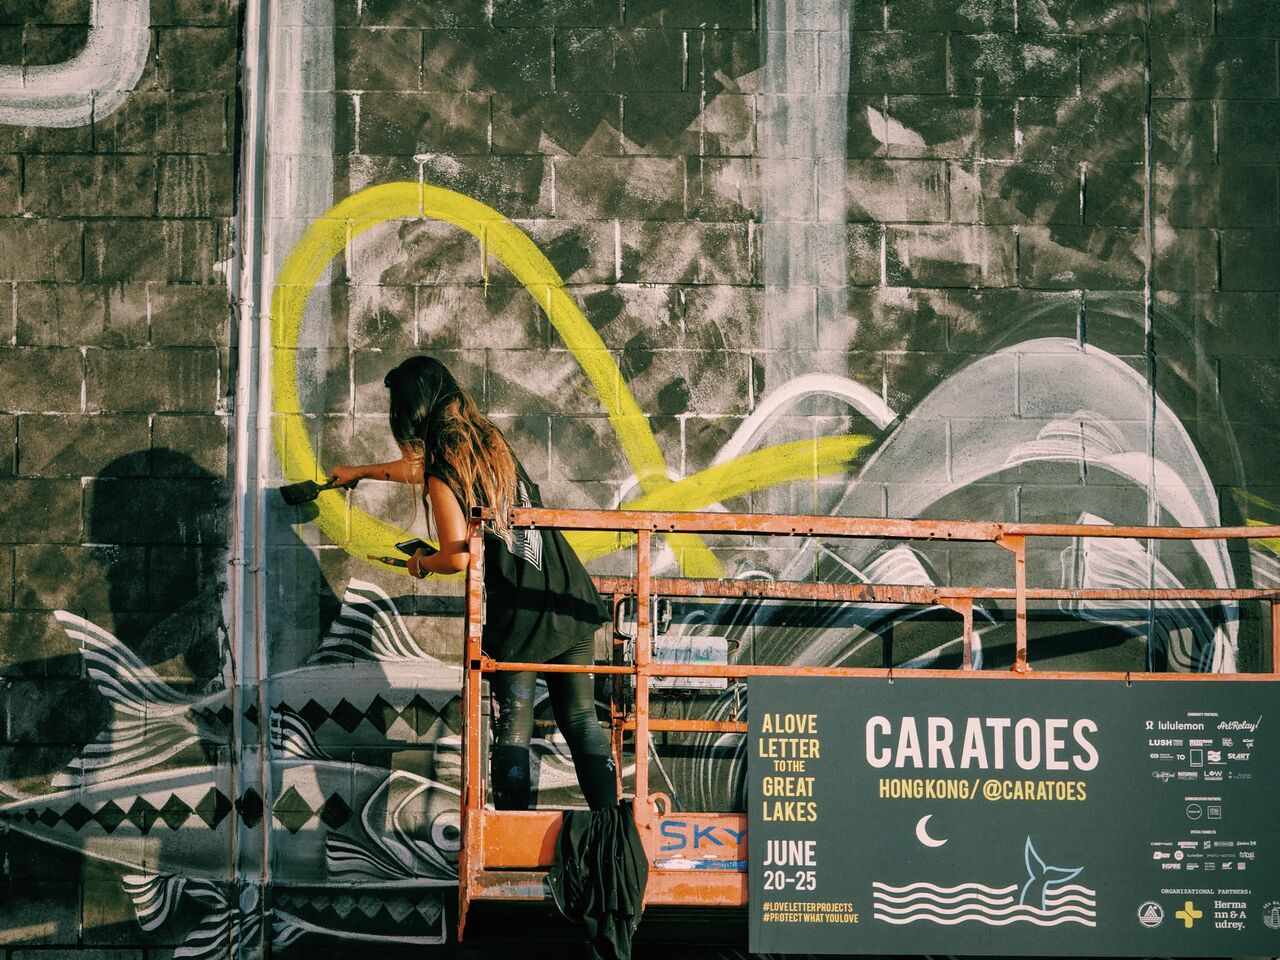 Caratoes joined us from Hong Kong for   A Love Letter to the Great Lakes   where we added several new murals to the hood.